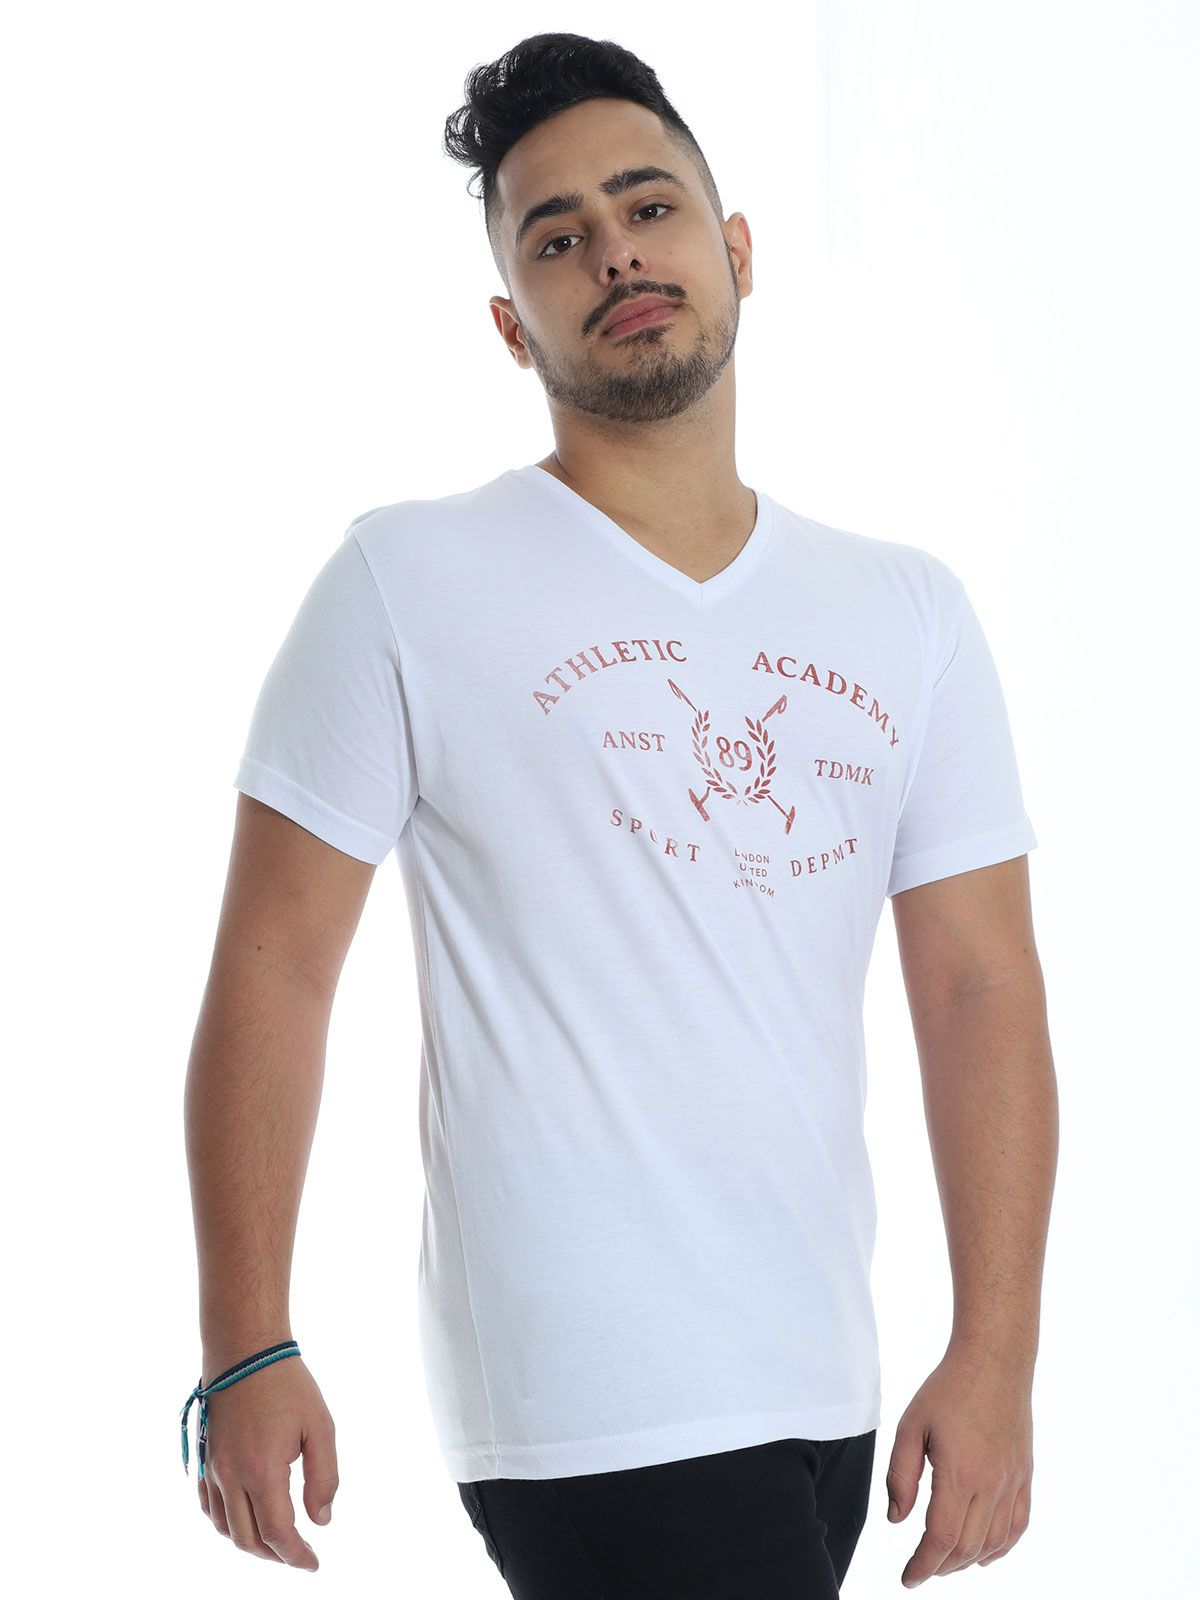 Camiseta Masculina Slim Fit Decote V. Manga Curta Estampada Branco